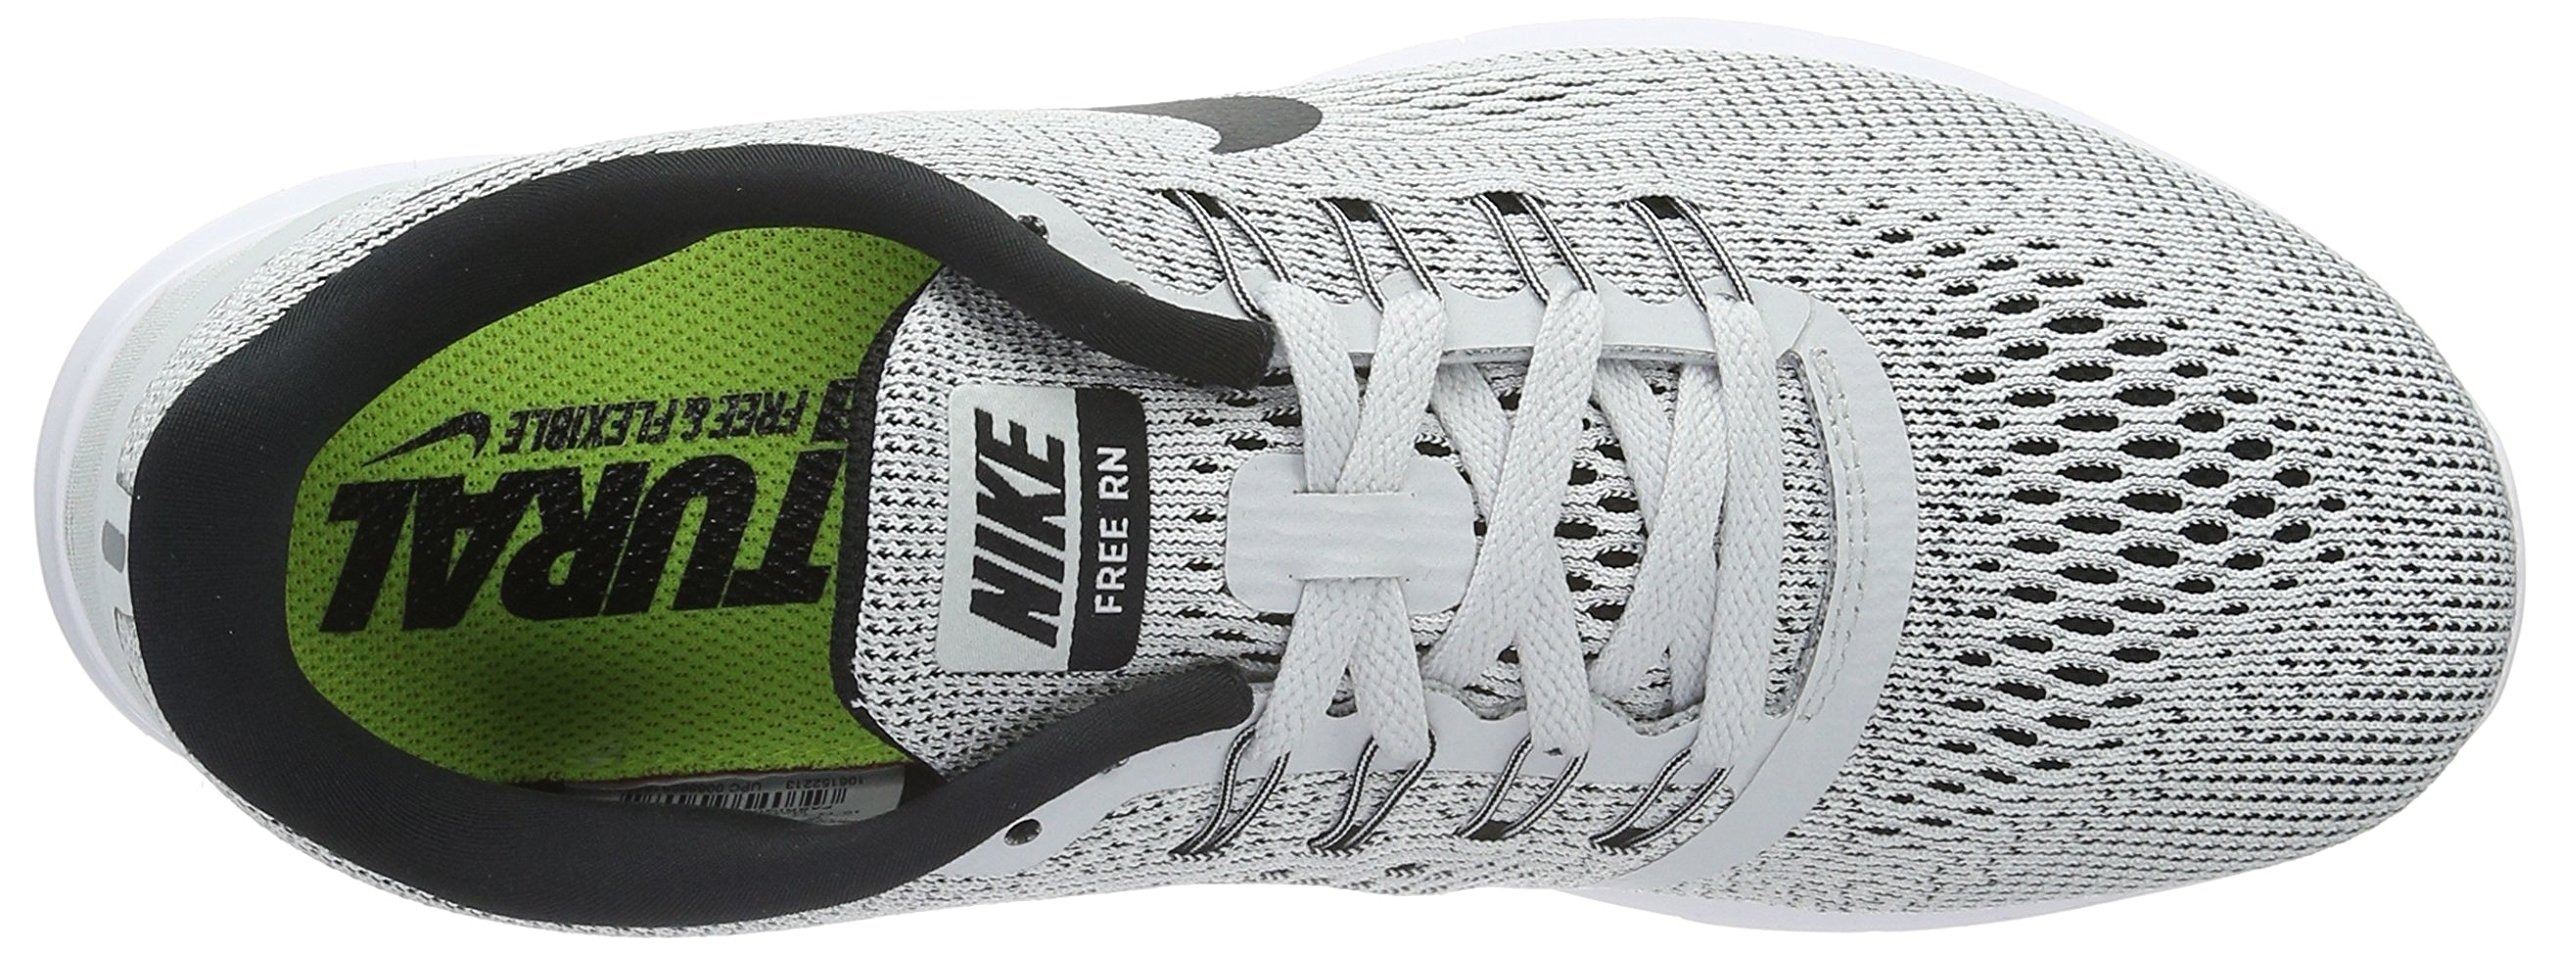 Nike Womens Free RN Running Shoe White/Black/Pure Platinum 6 by Nike (Image #8)